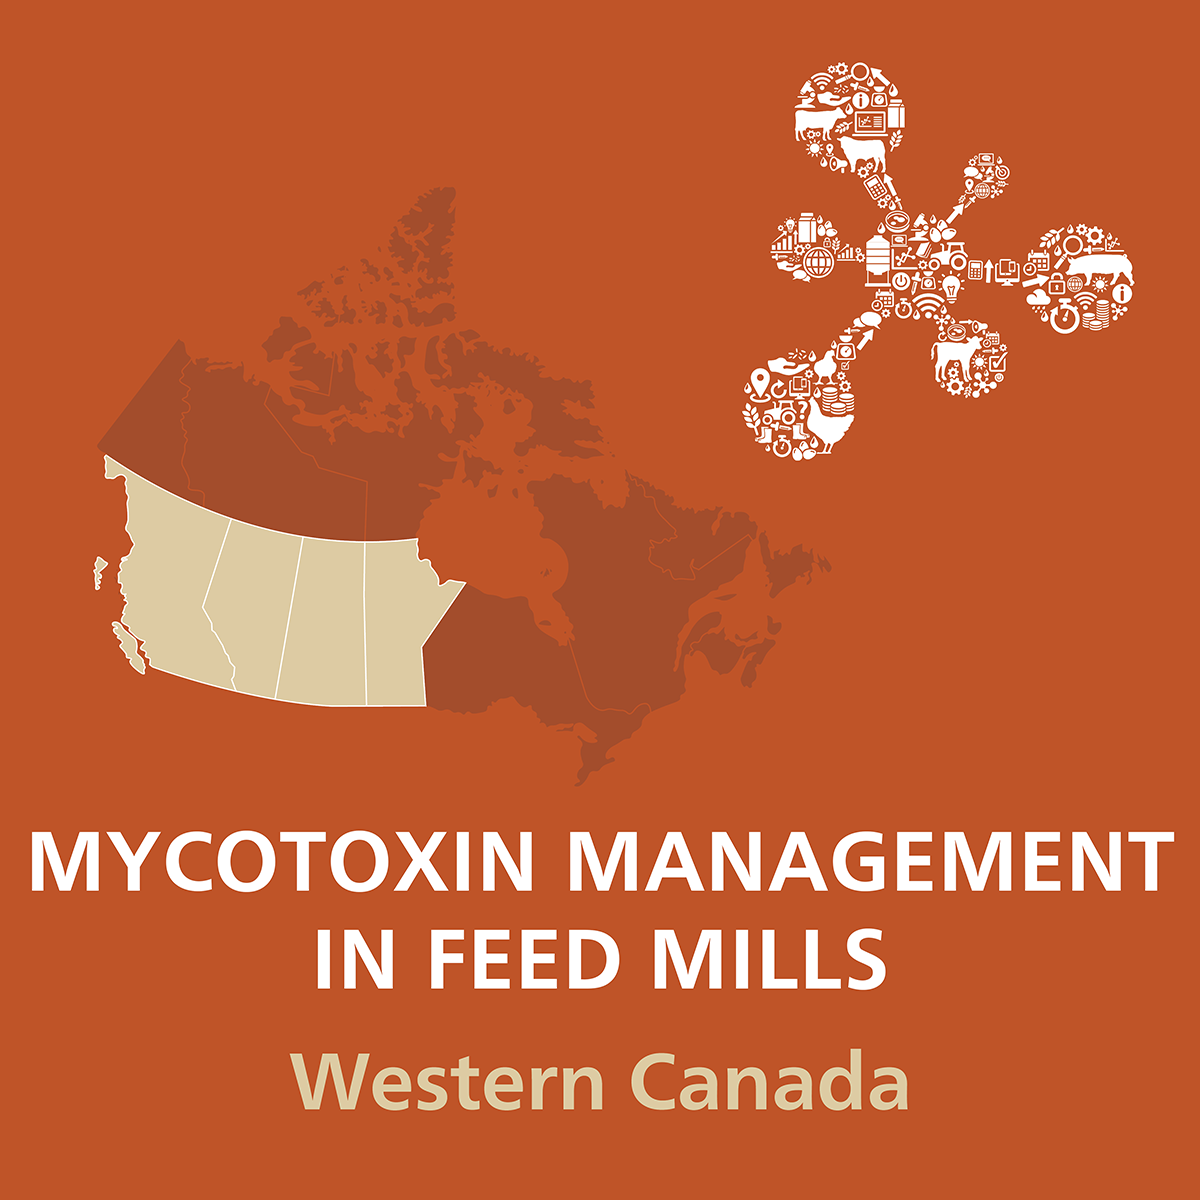 Mycotoxin-Management-in-Feed-Mills